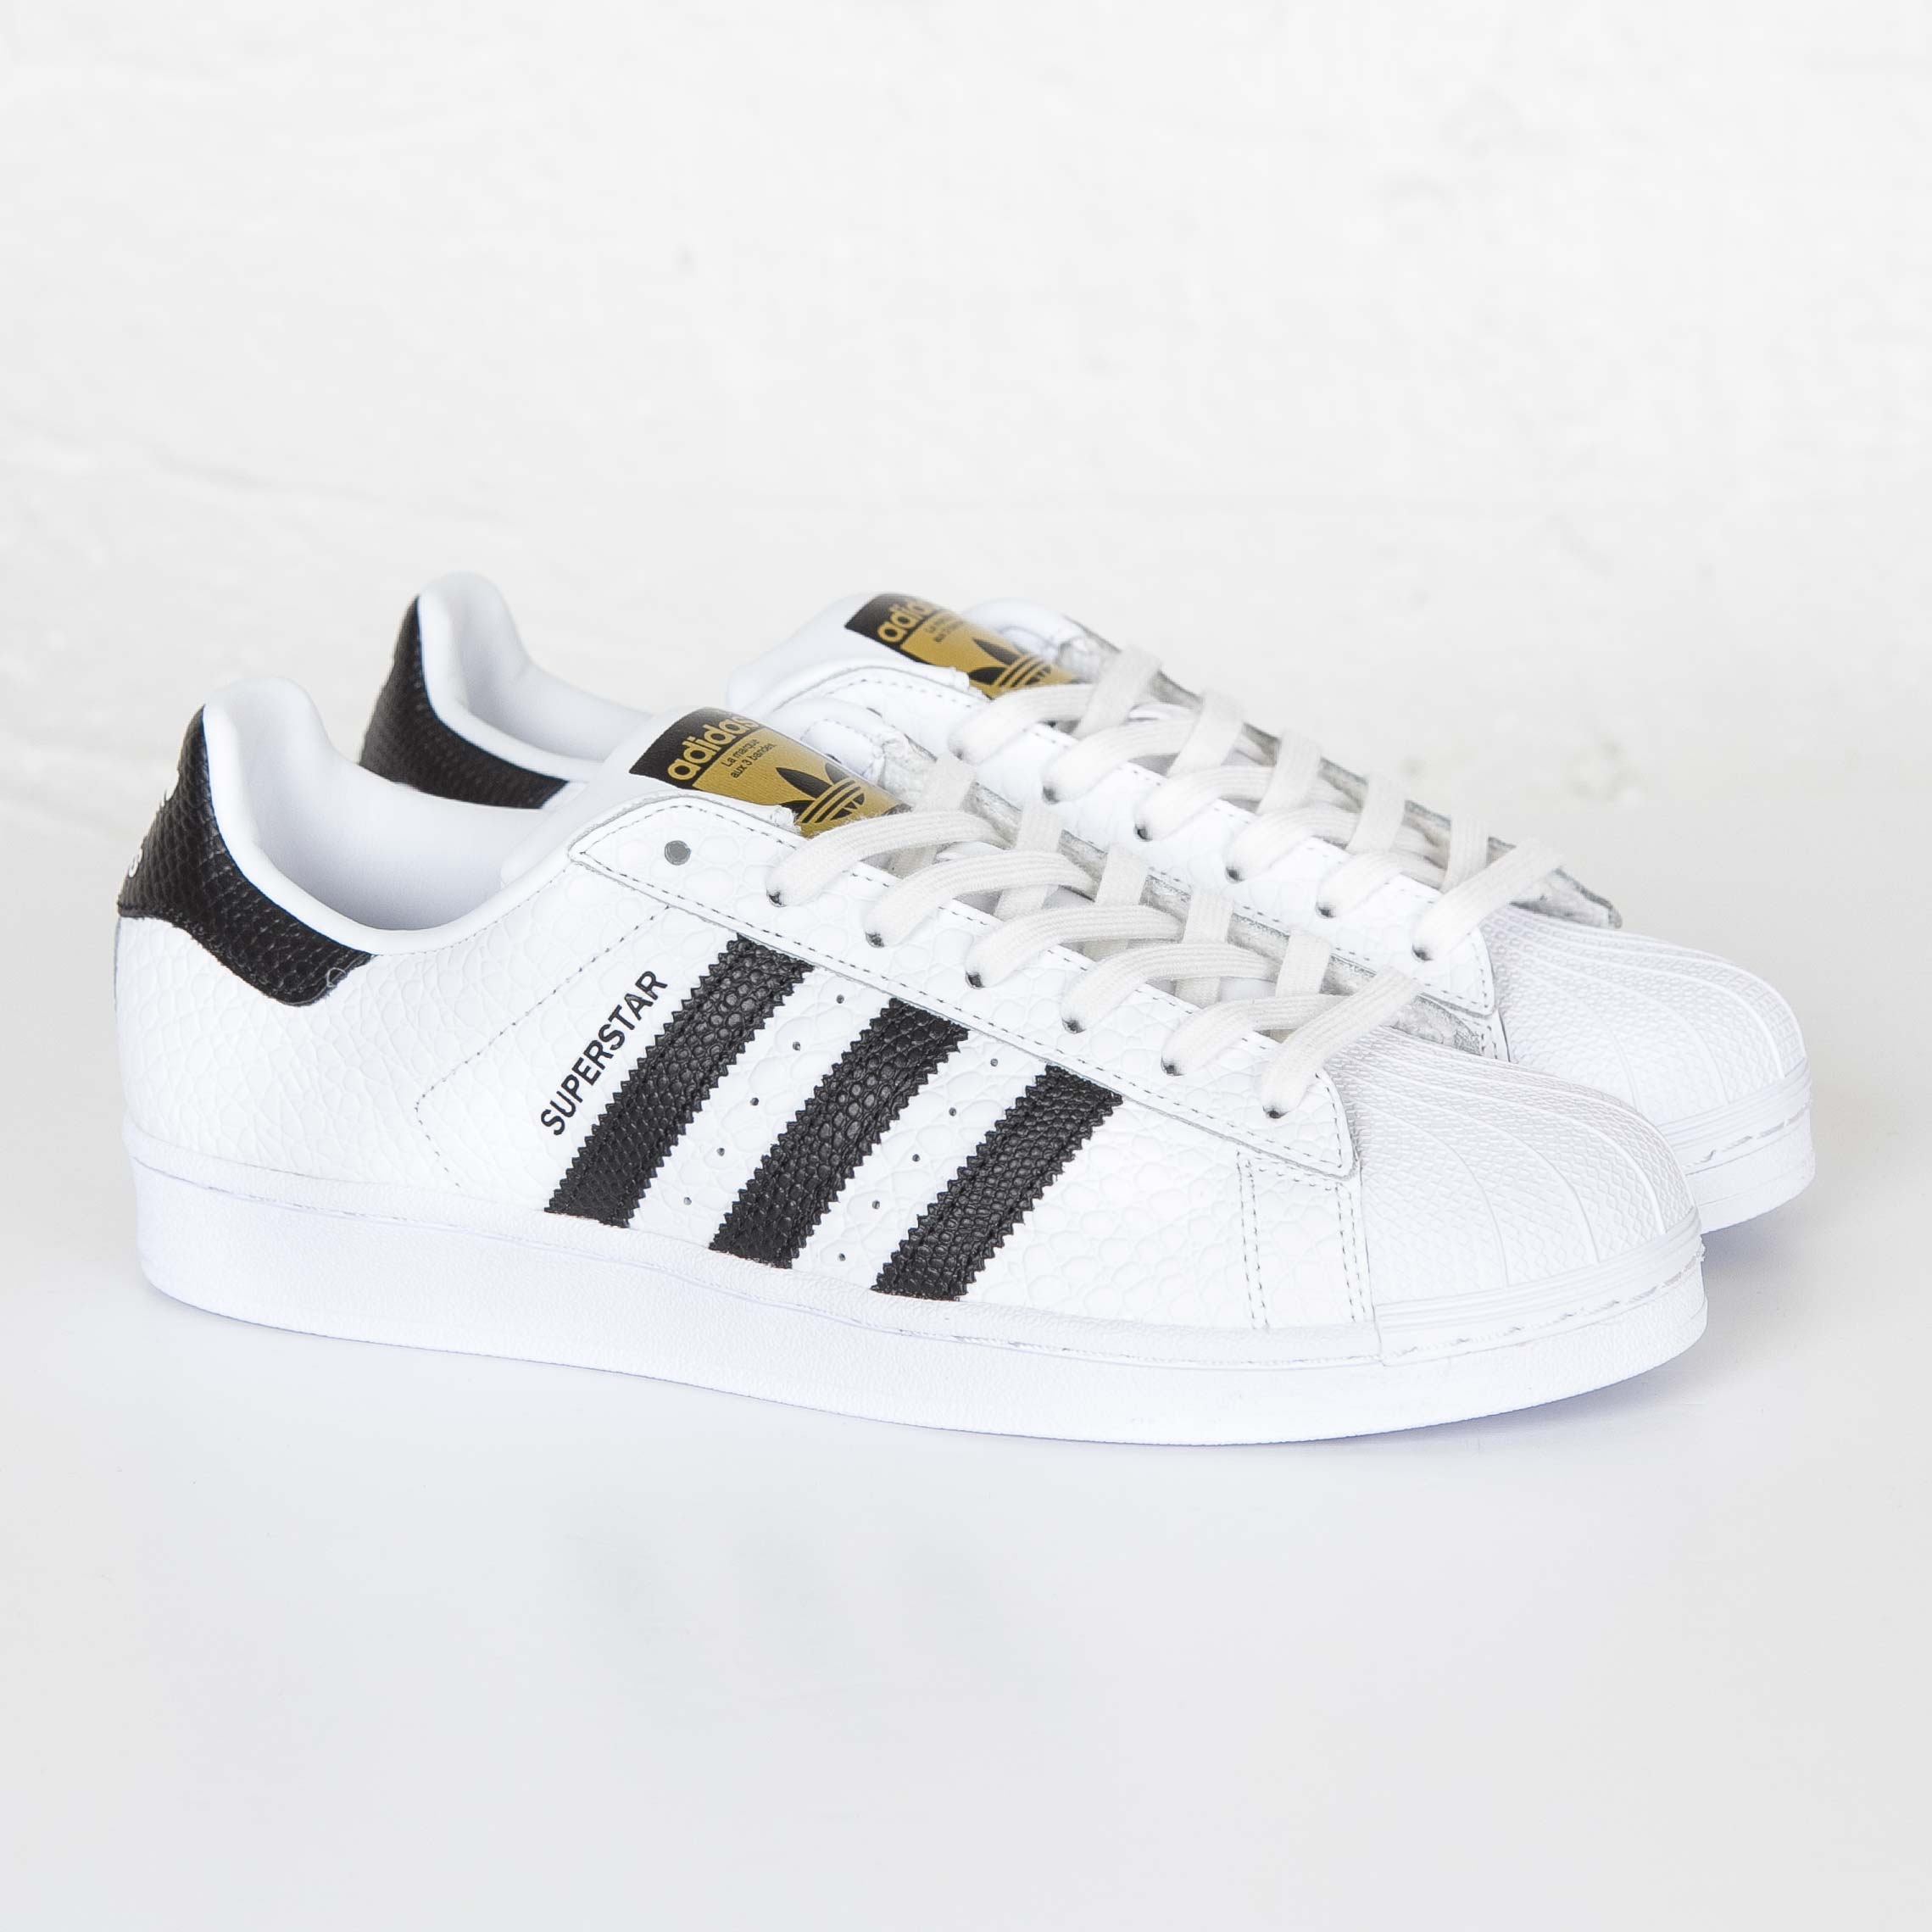 adidas superstar animale s75157 sneakersnstuff scarpe